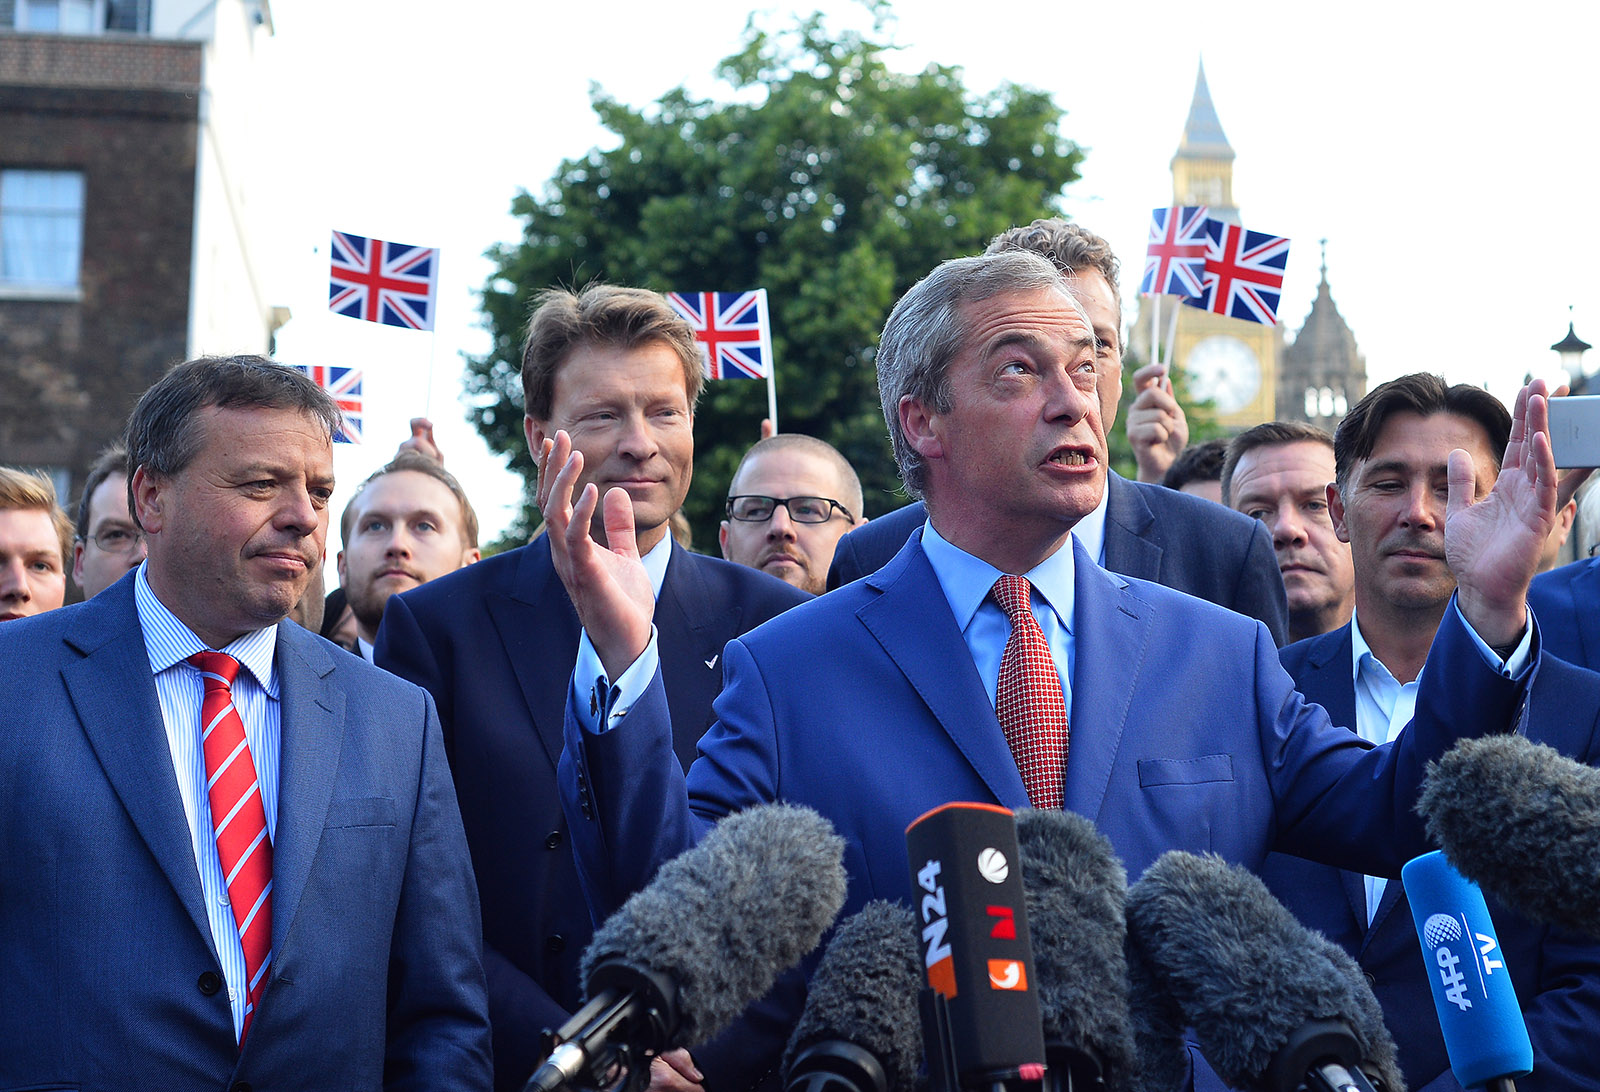 Nigel Farage speaking at a press conference the day after the Brexit referendum, flanked by Arron Banks (far left) and Andy Wigmore (right), Westminster, London, June 24, 2016